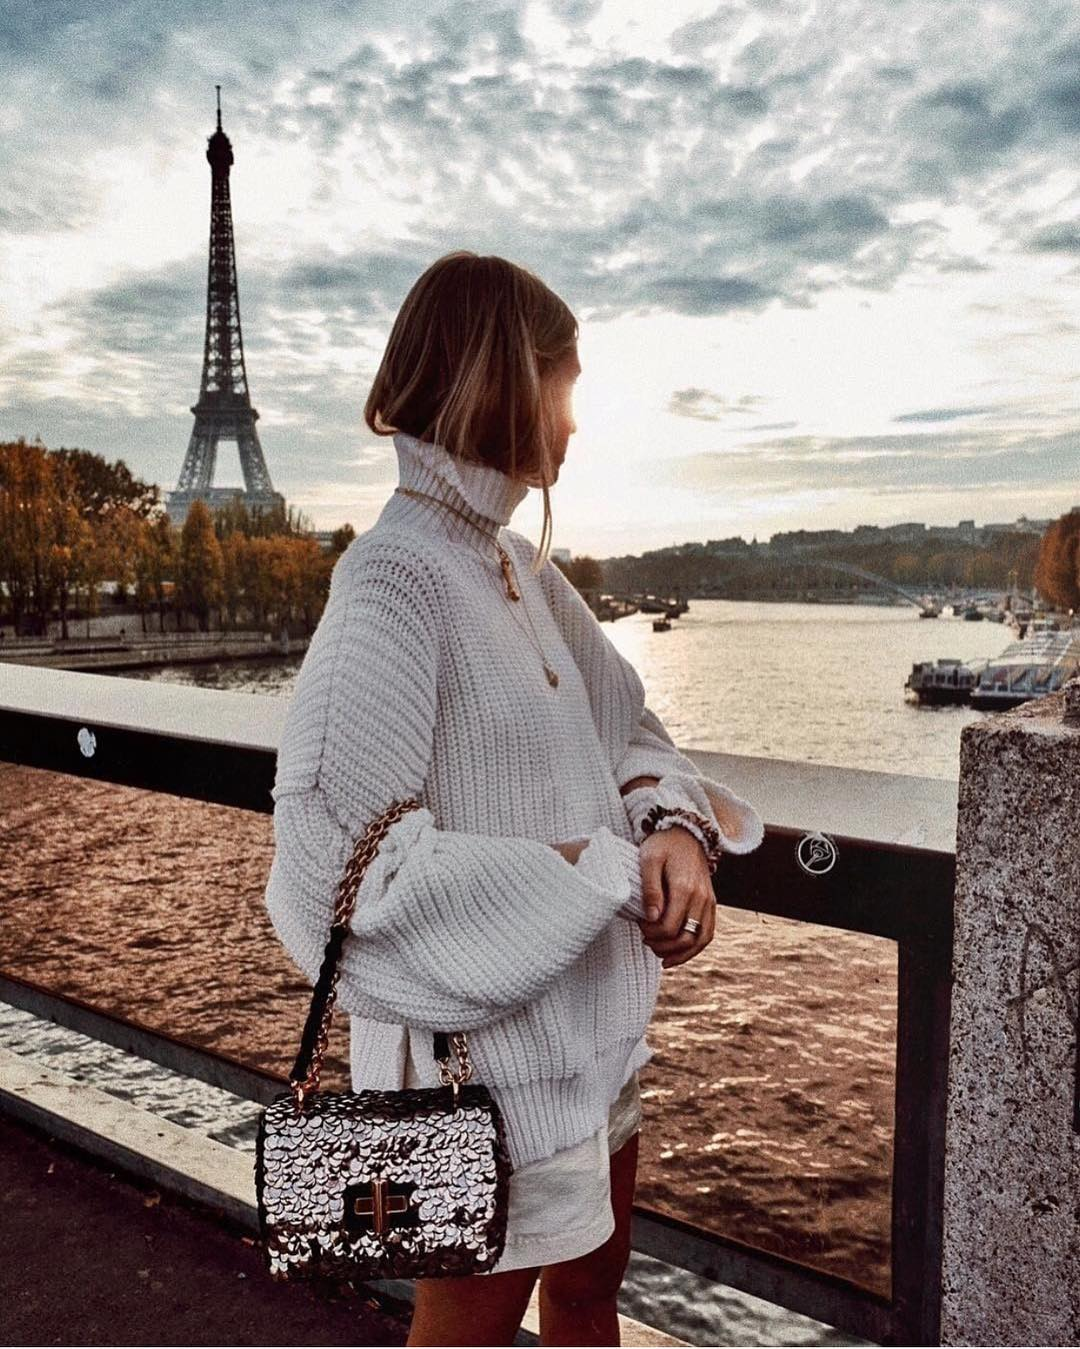 All White Casual Look For Parisian Chic Trip 2019